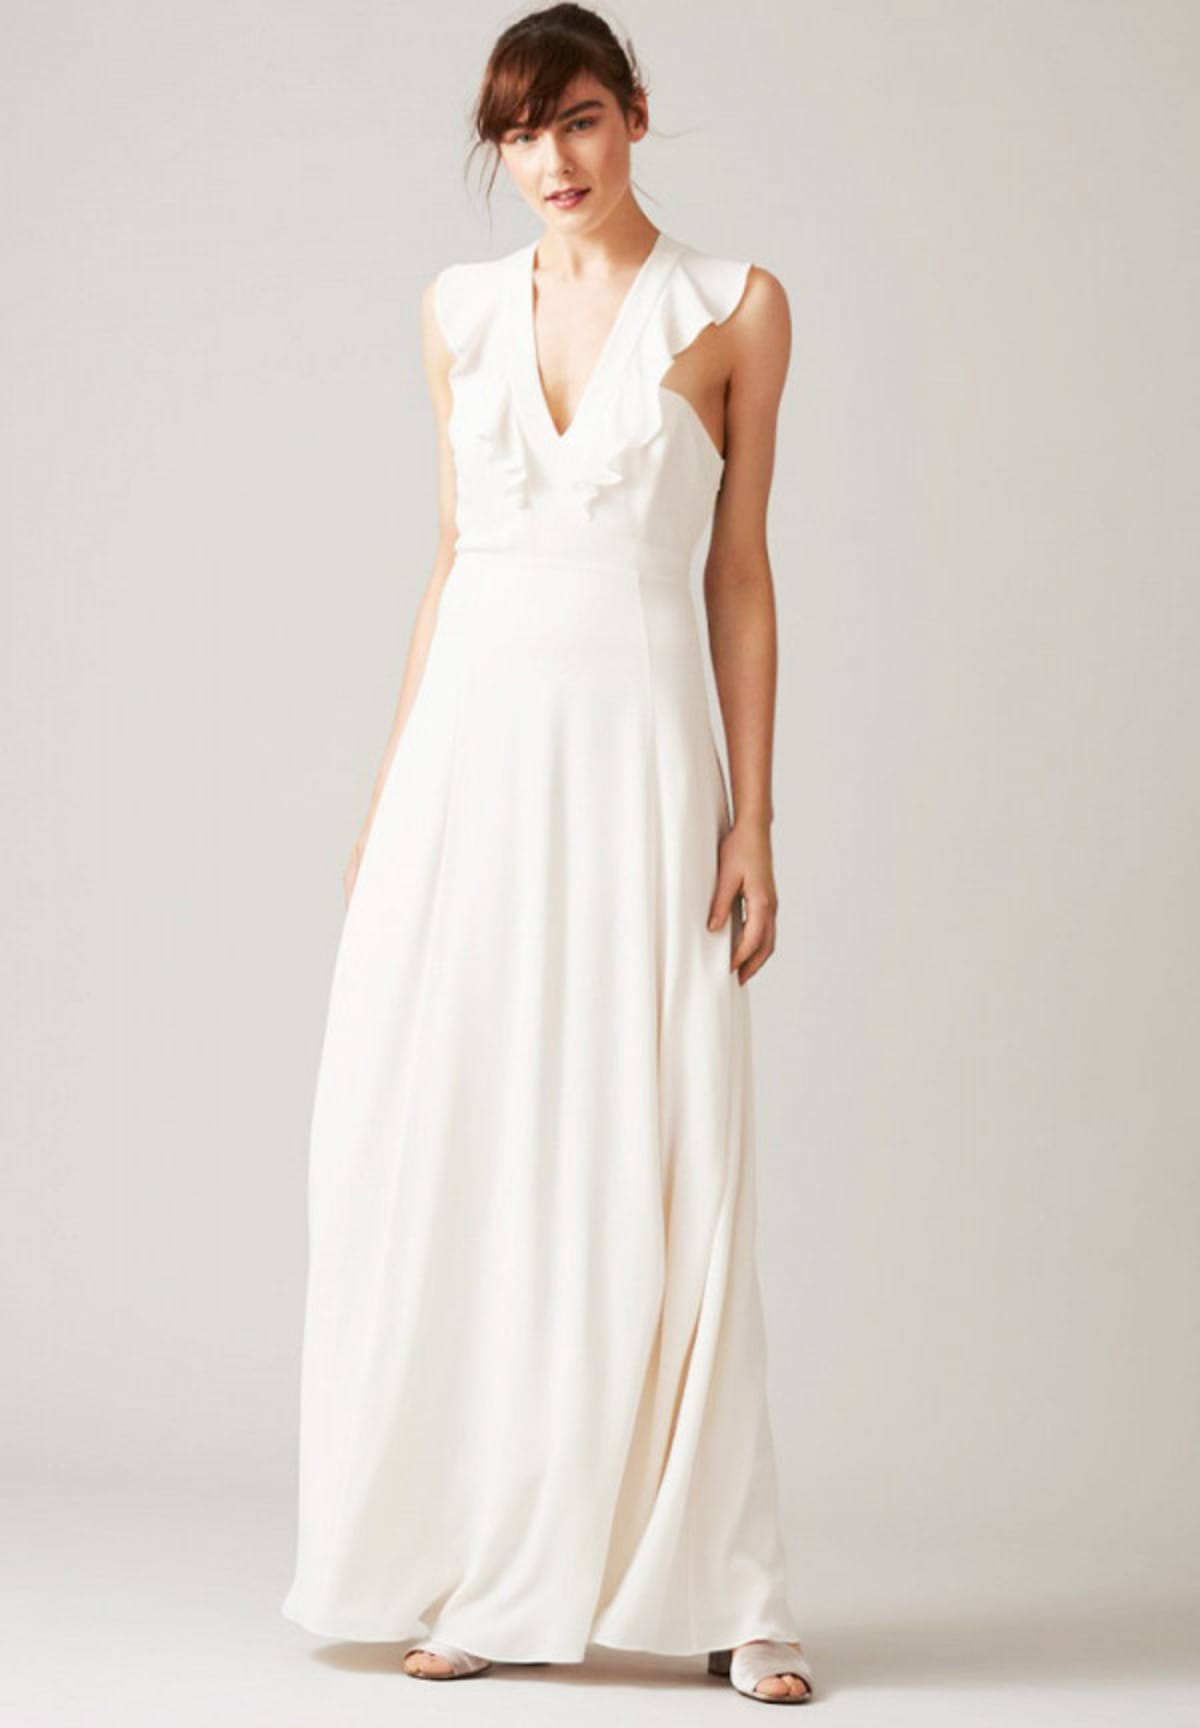 whistles-just-announced-its-launching-a-bridal-collectionsee-it-here-1954682-1477552867.600x0c